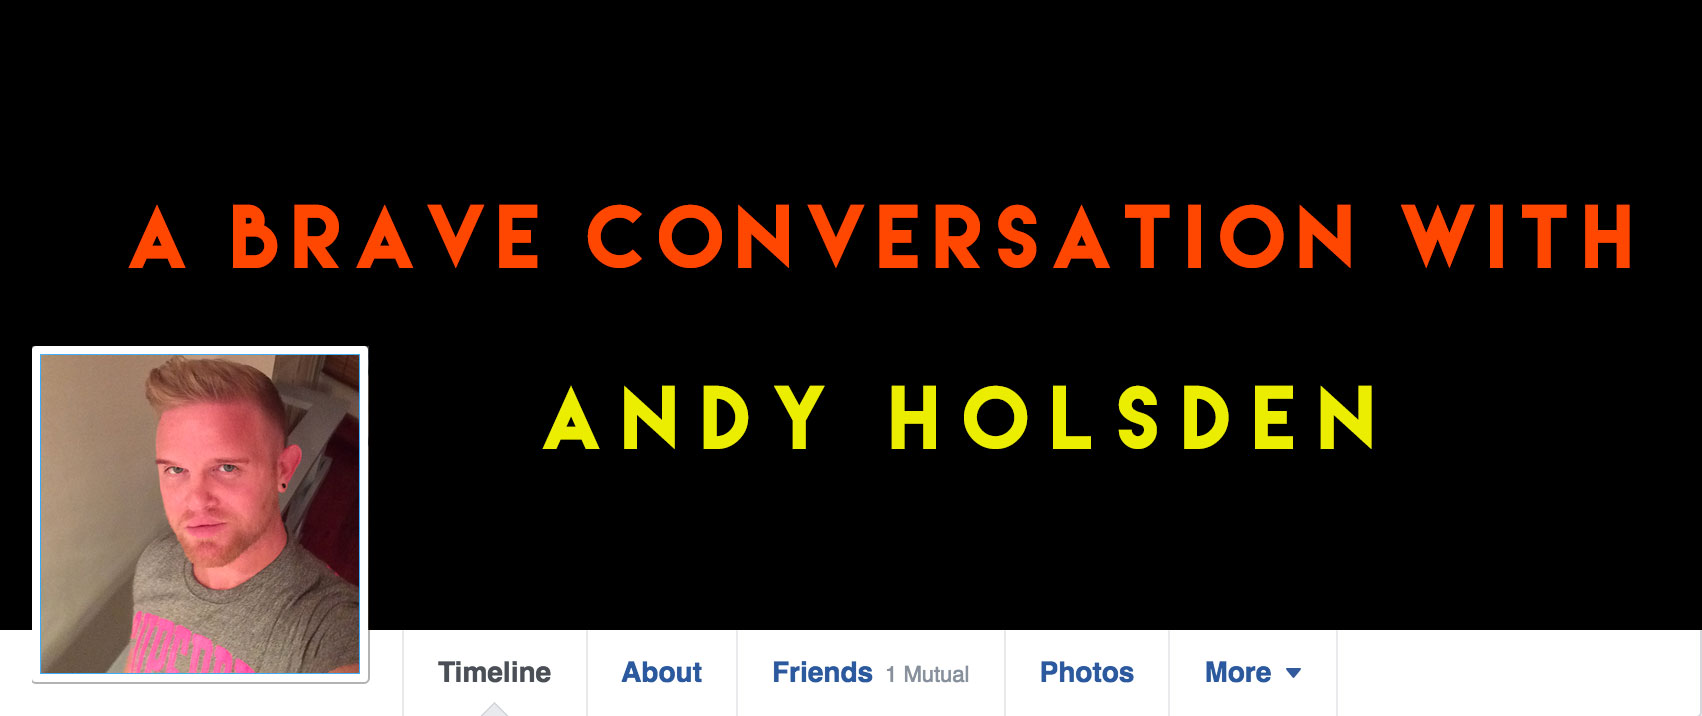 Andy Holsden's Brave Conversation